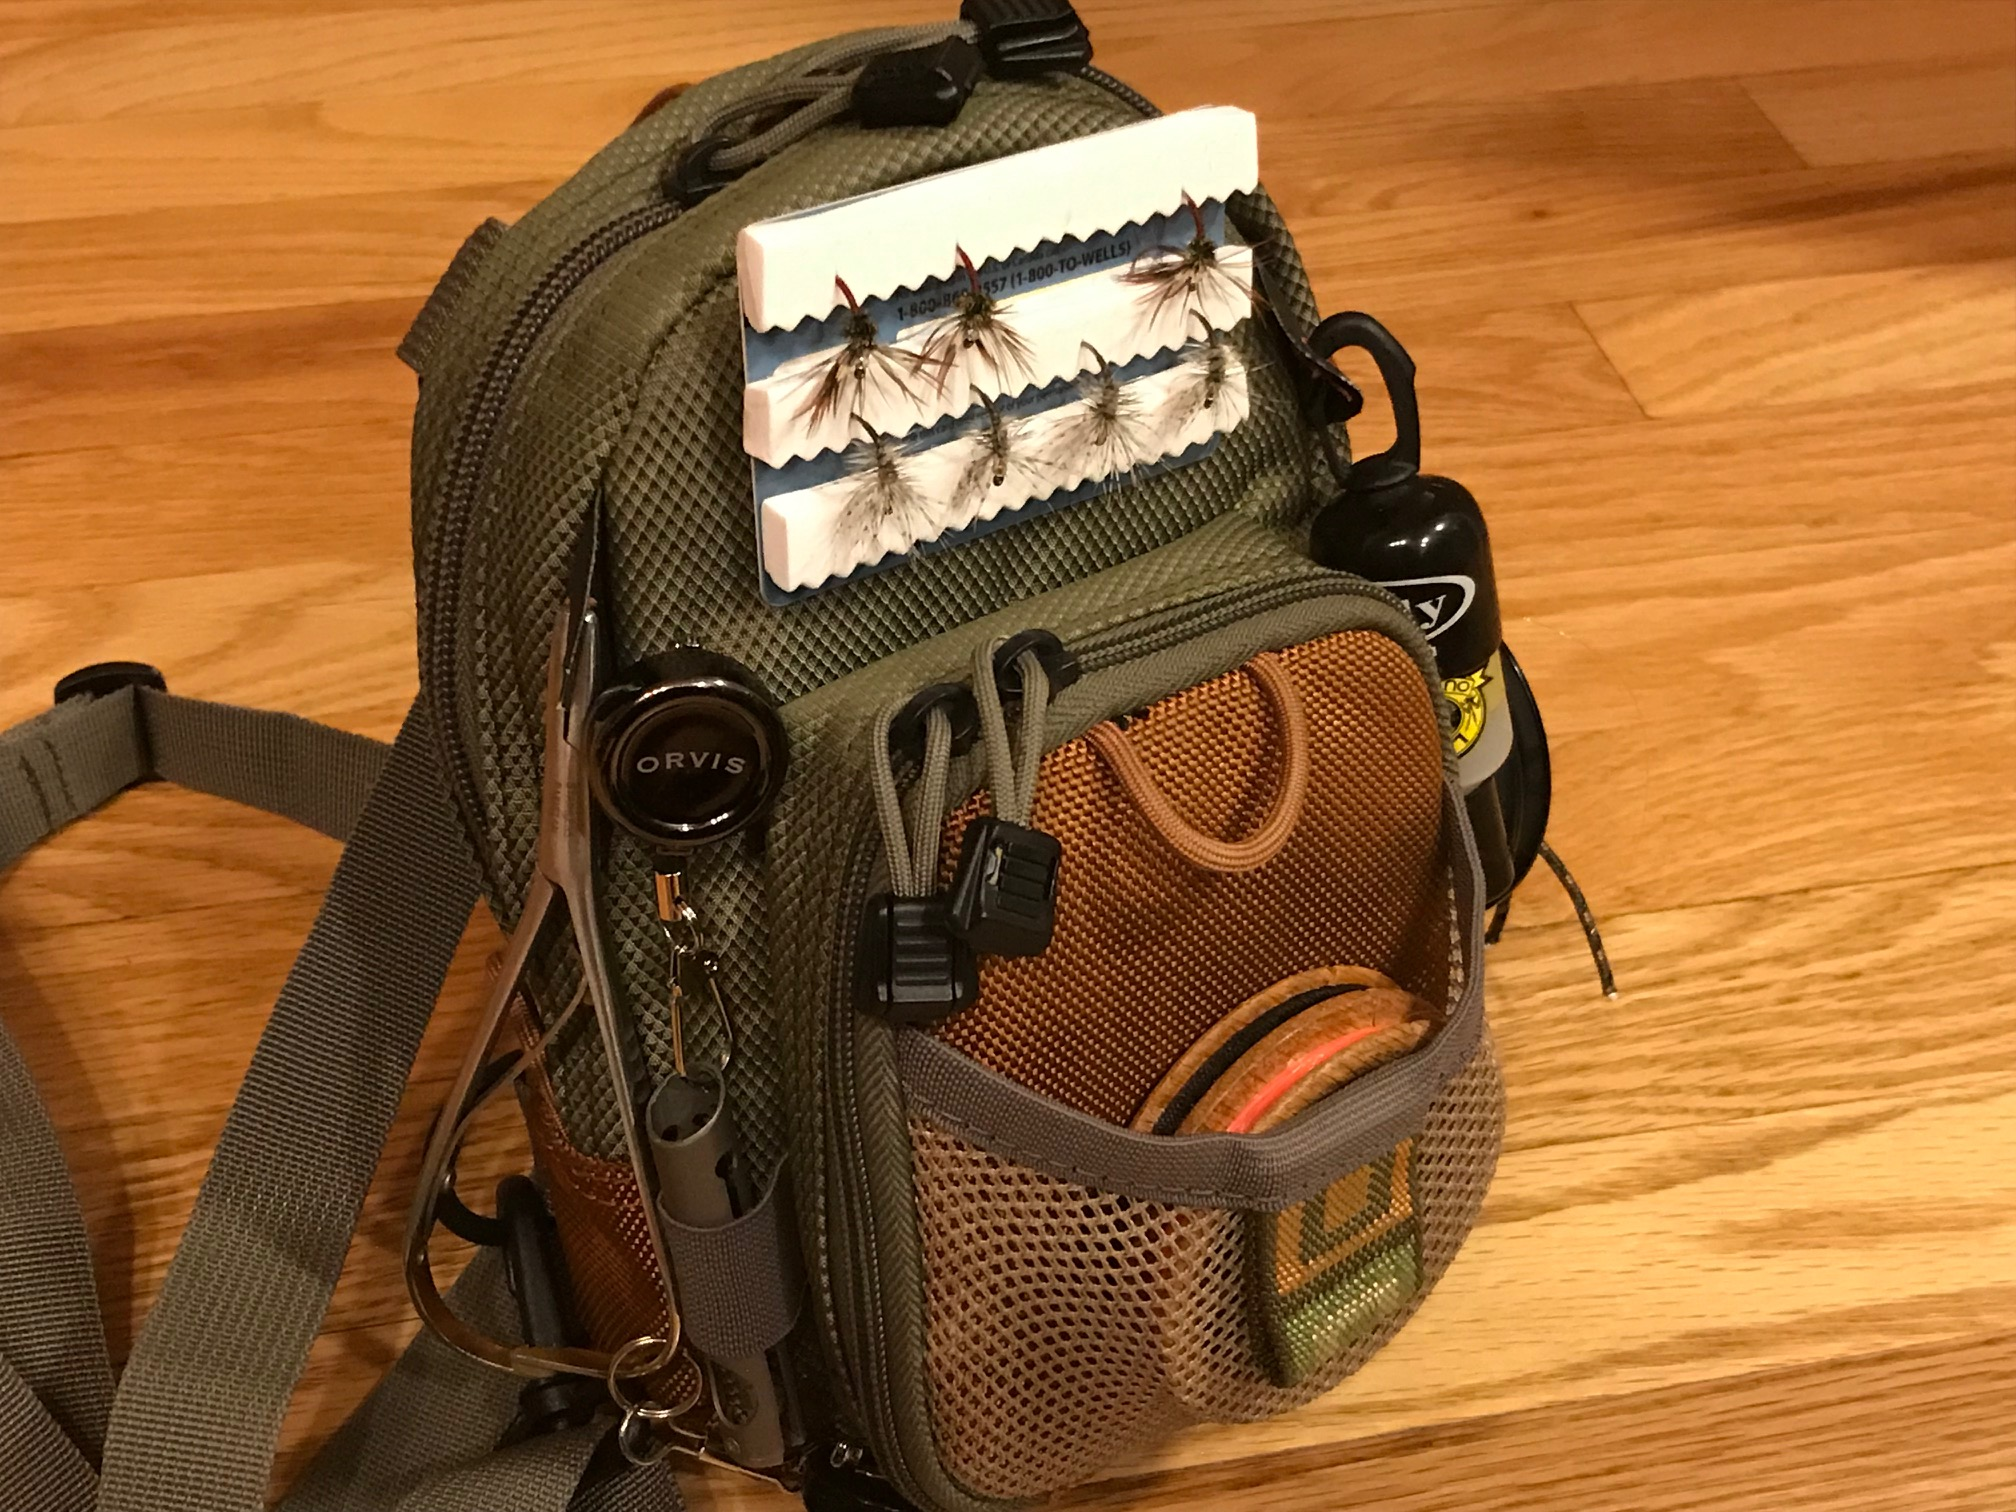 https://tenkaratalk.com/2011/11/fishpond-san-juan-chest-pack-review/